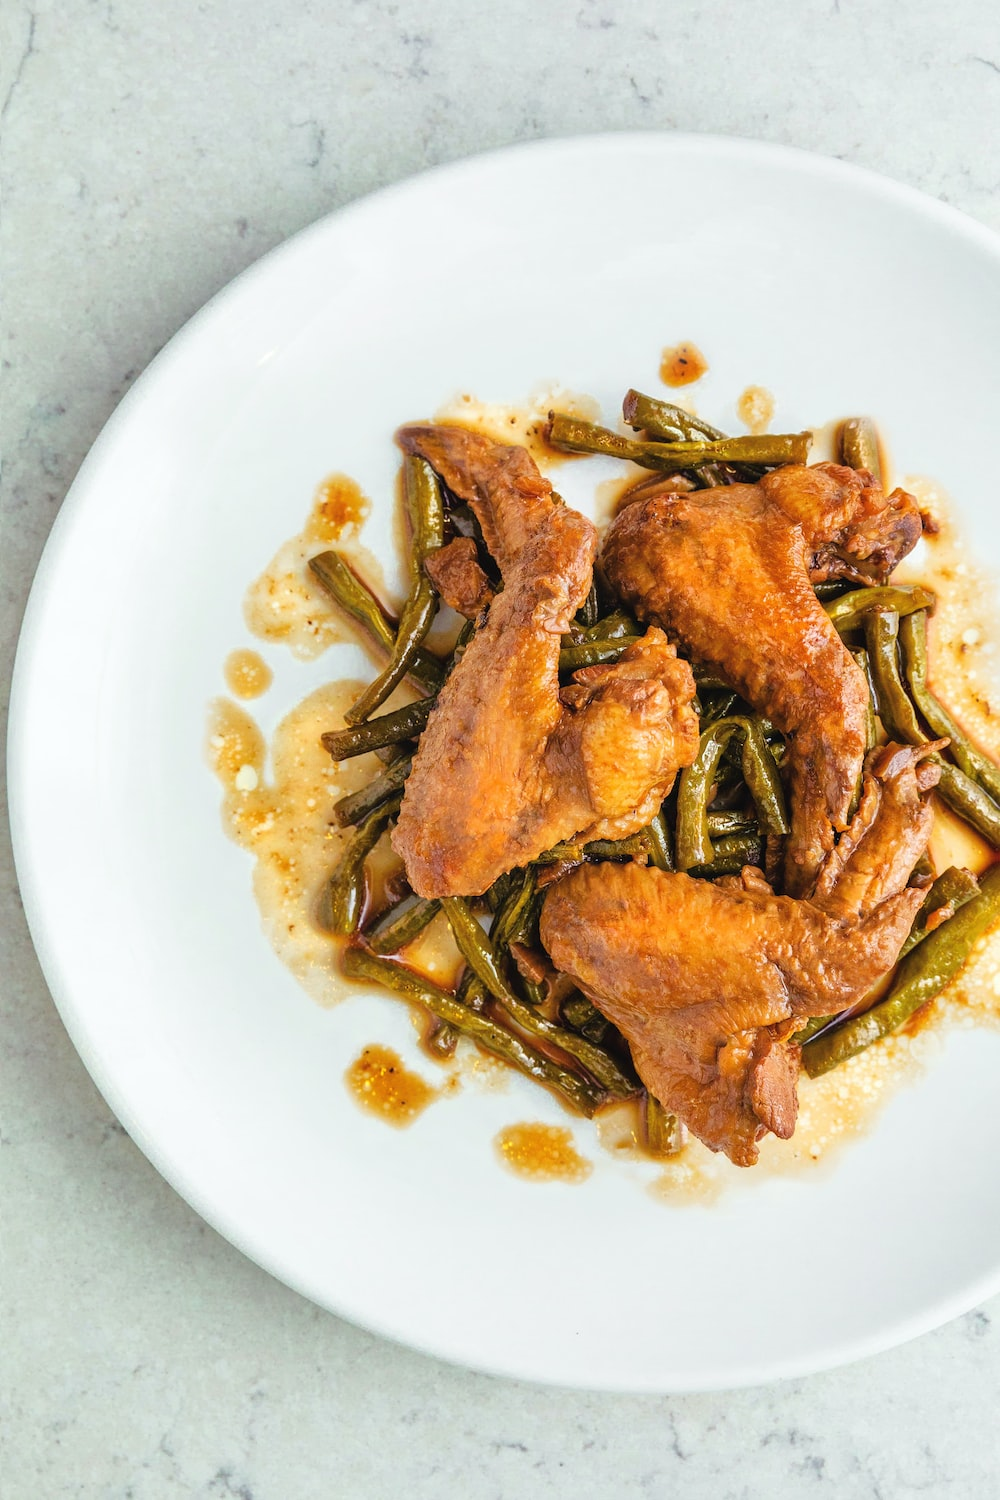 fried chicken wings in round white ceramic plate